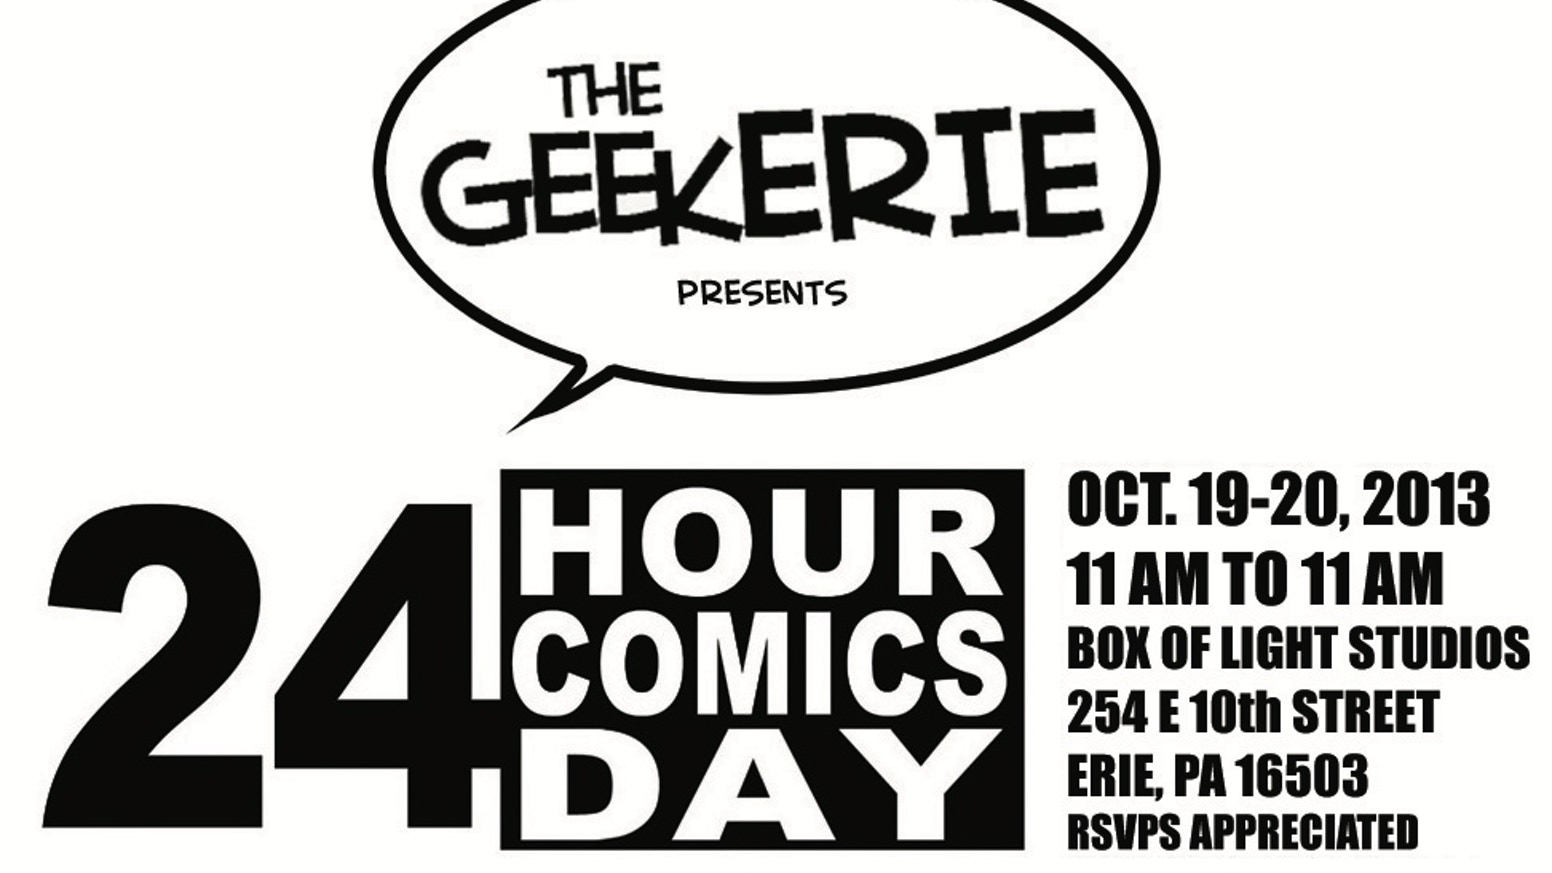 The GeekERIE presents 24 Hour Comics Day in Erie, PA 2013